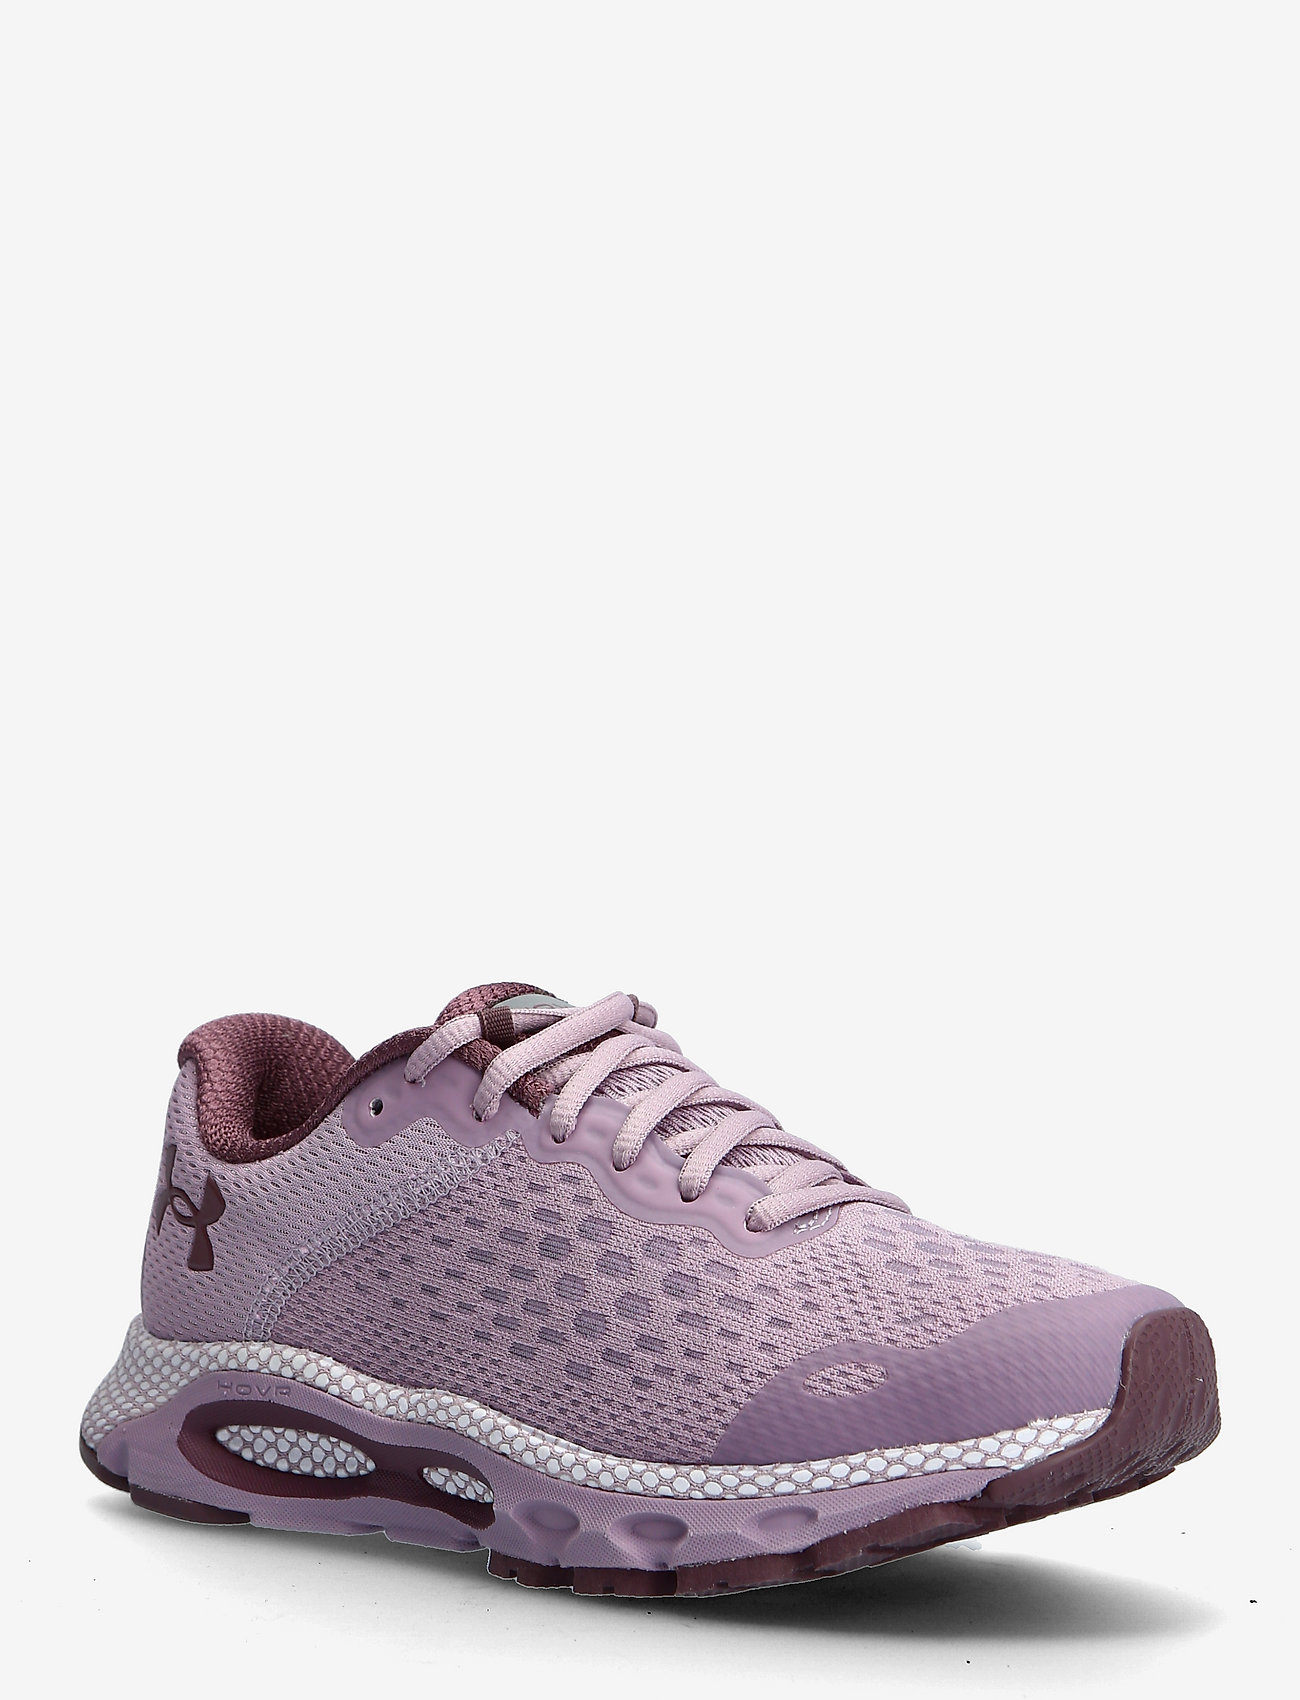 Under Armour - UA W HOVR Infinite 3 - running shoes - mauve pink - 0